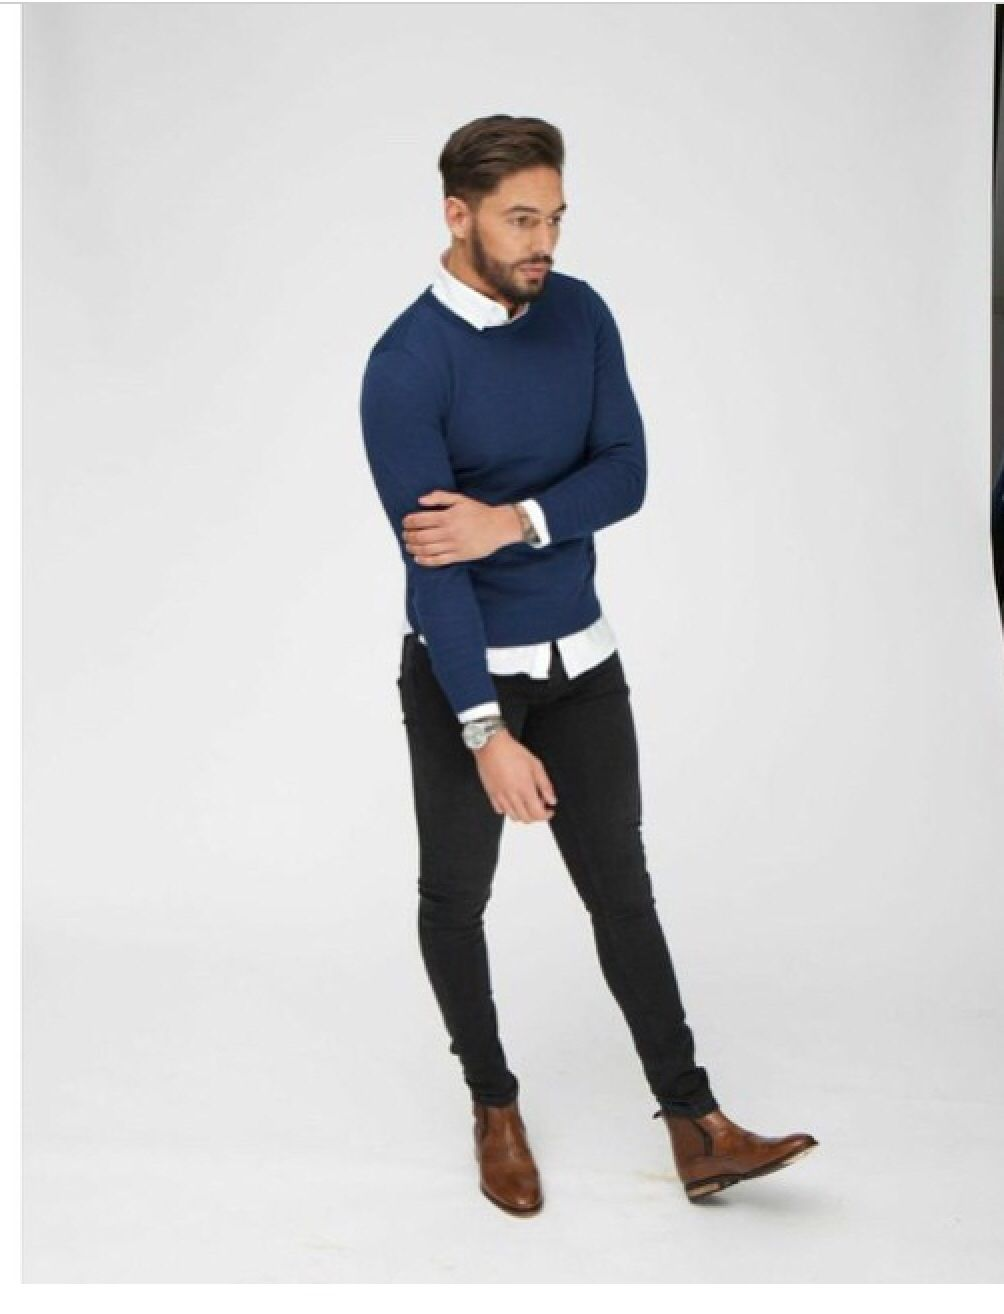 Mario Falcone Men S Clothing Mens Fashion Fashion Menswear